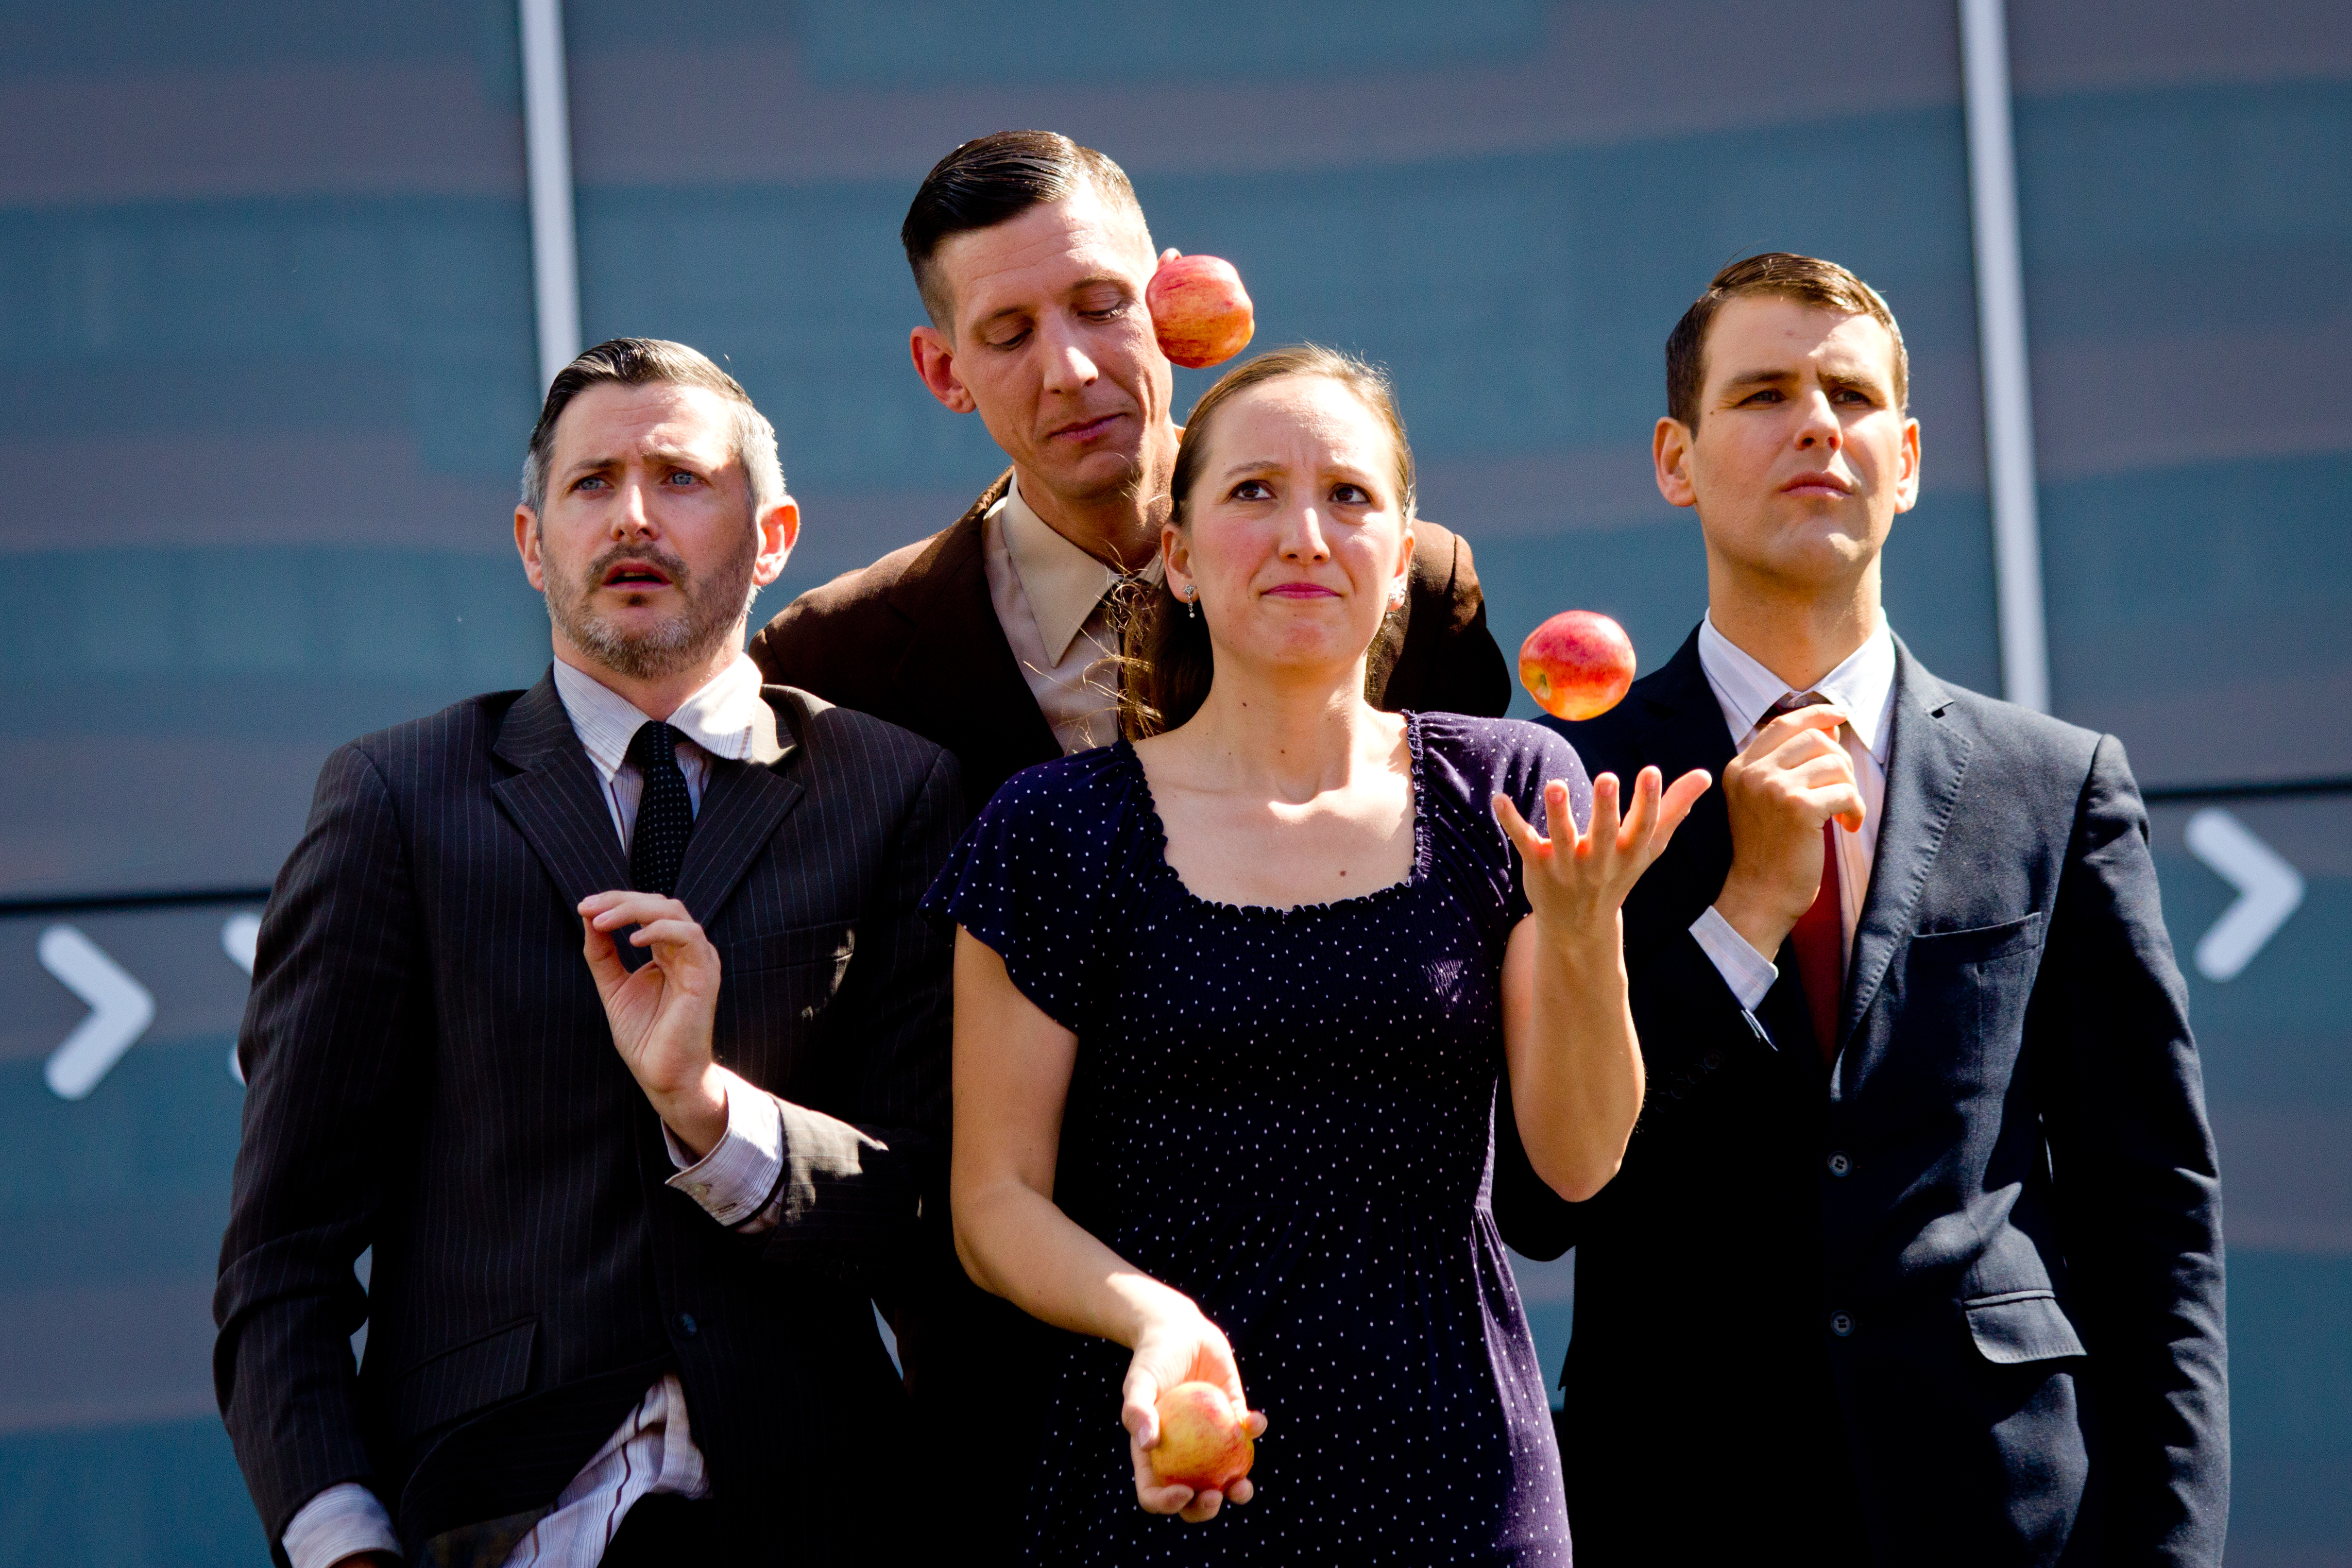 Gandini Juggling - Smashed XL: At the EJC 2016 Almere.